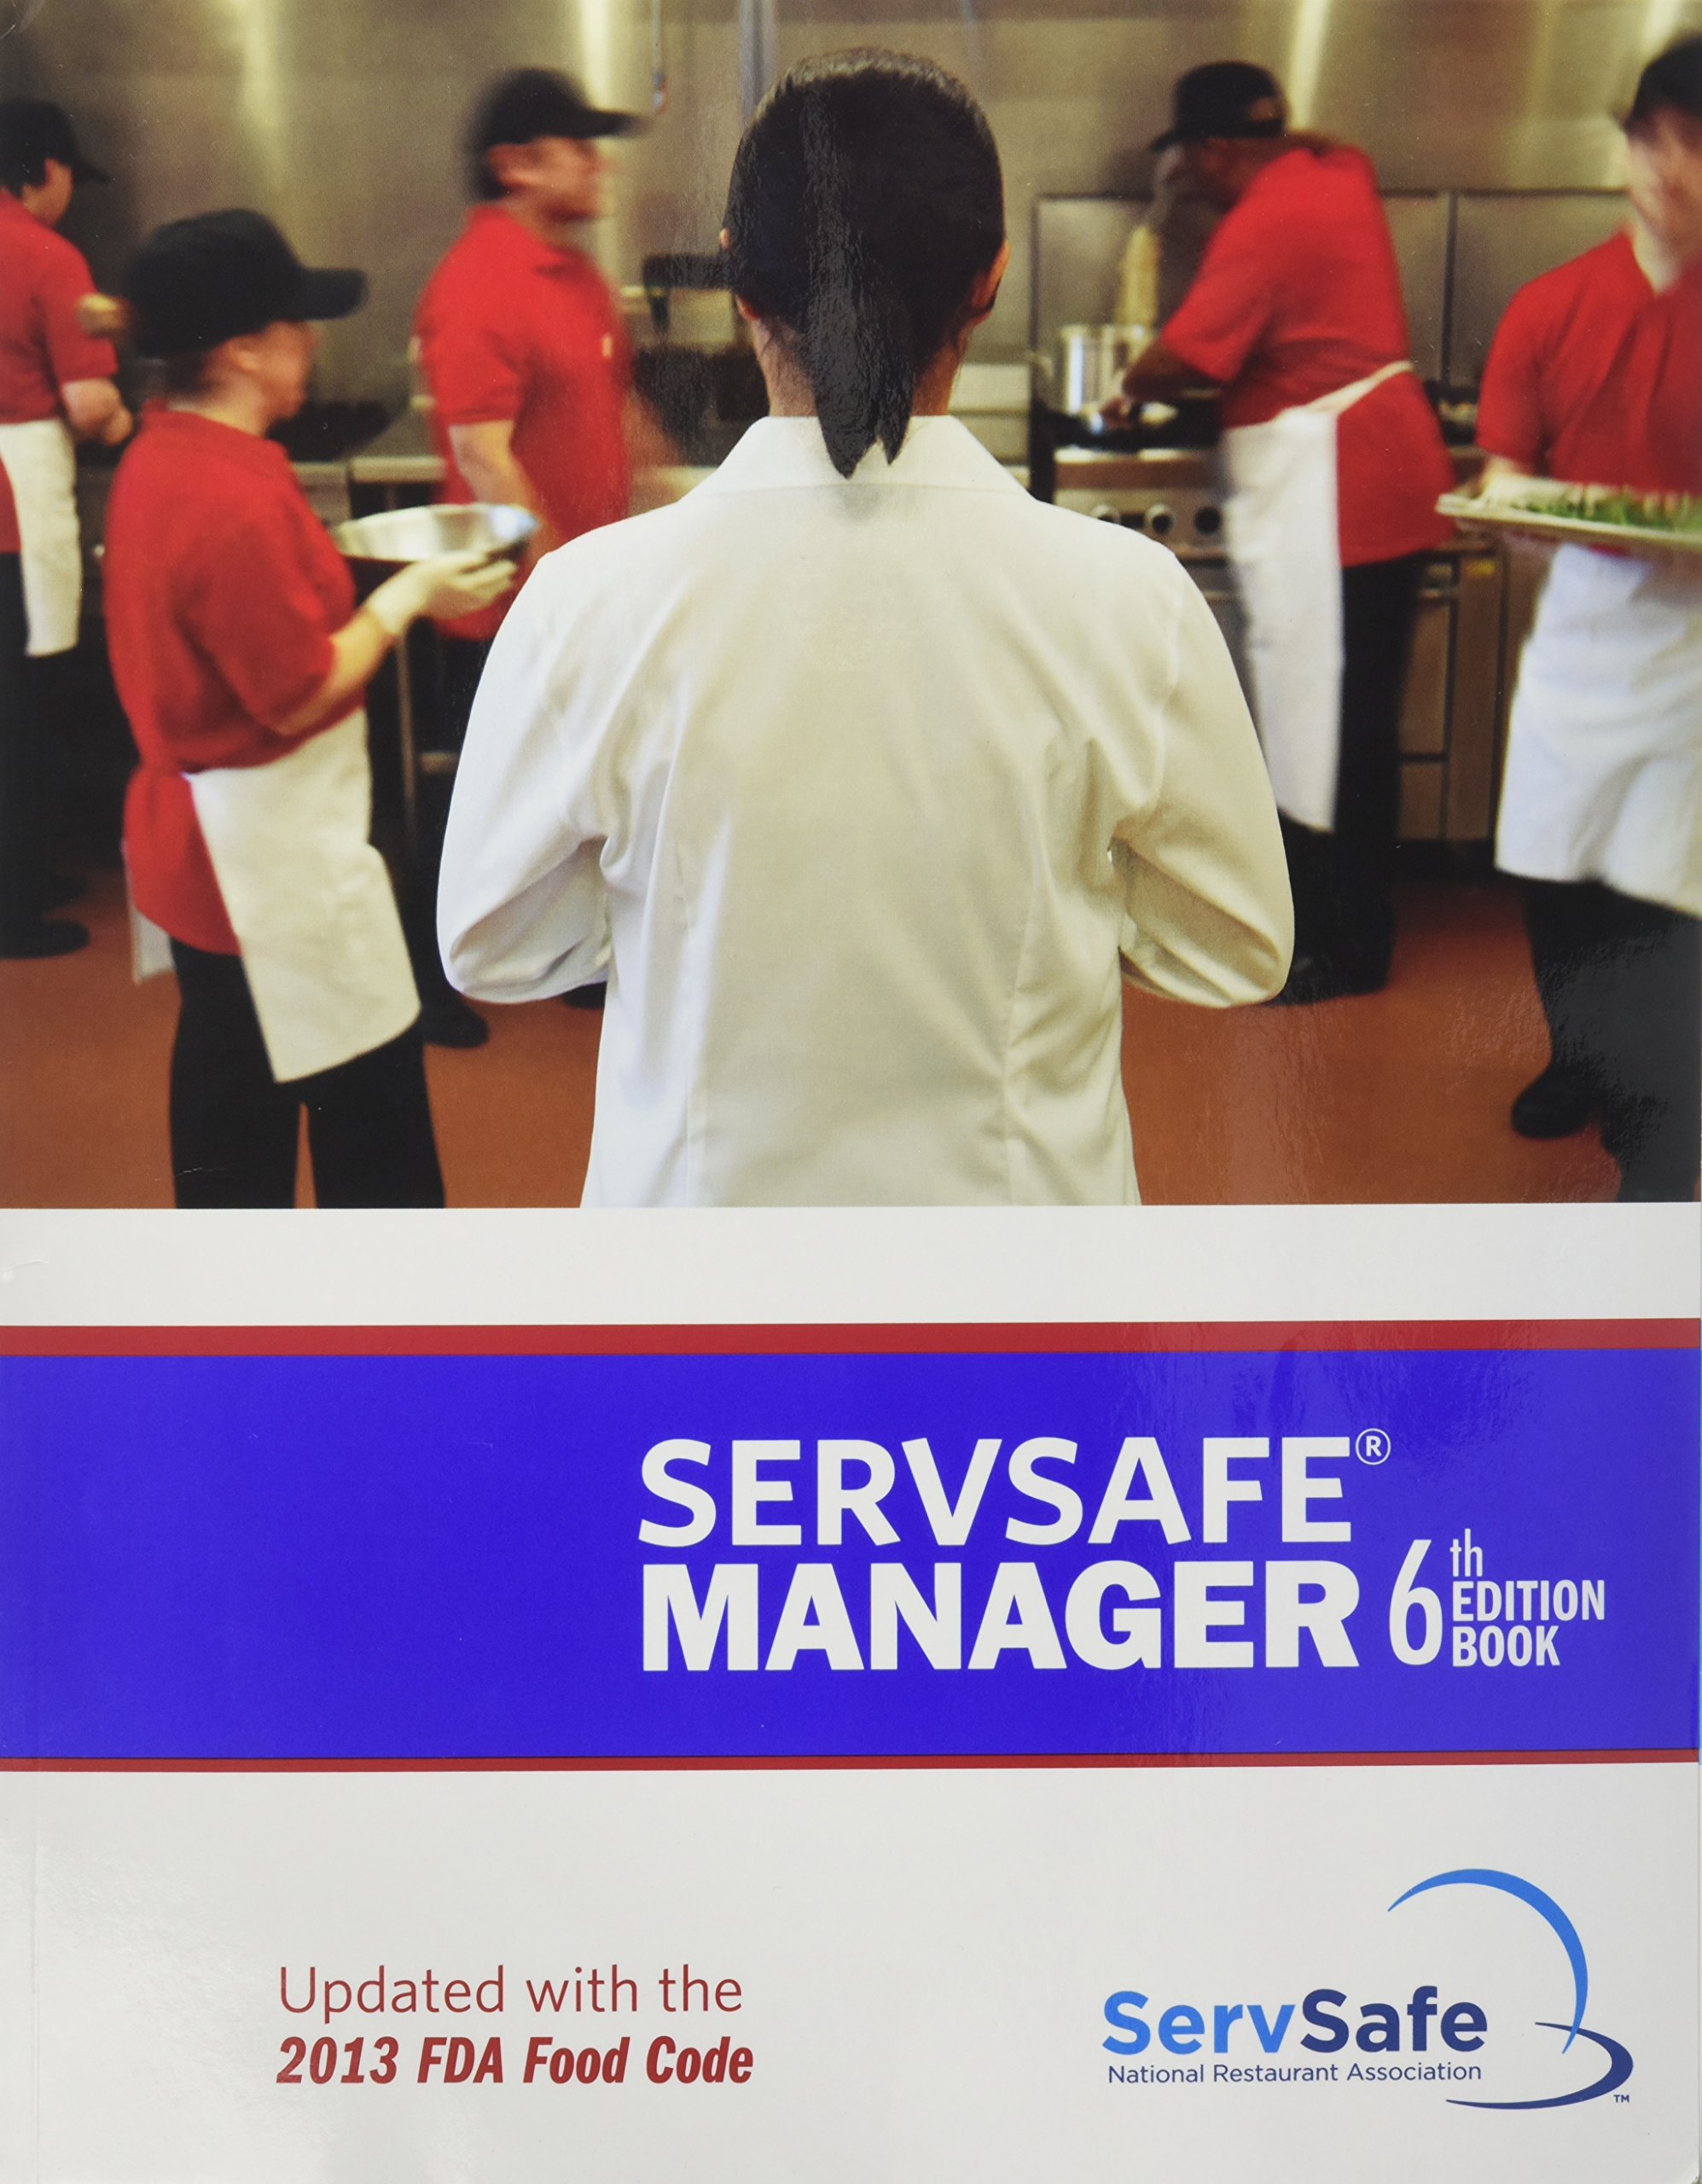 Servsafe manager 6th edition updated with the 2013 fda food code servsafe manager 6th edition updated with the 2013 fda food code esx6r with exam answer sheet national restaurant association 9781582803104 amazon xflitez Gallery